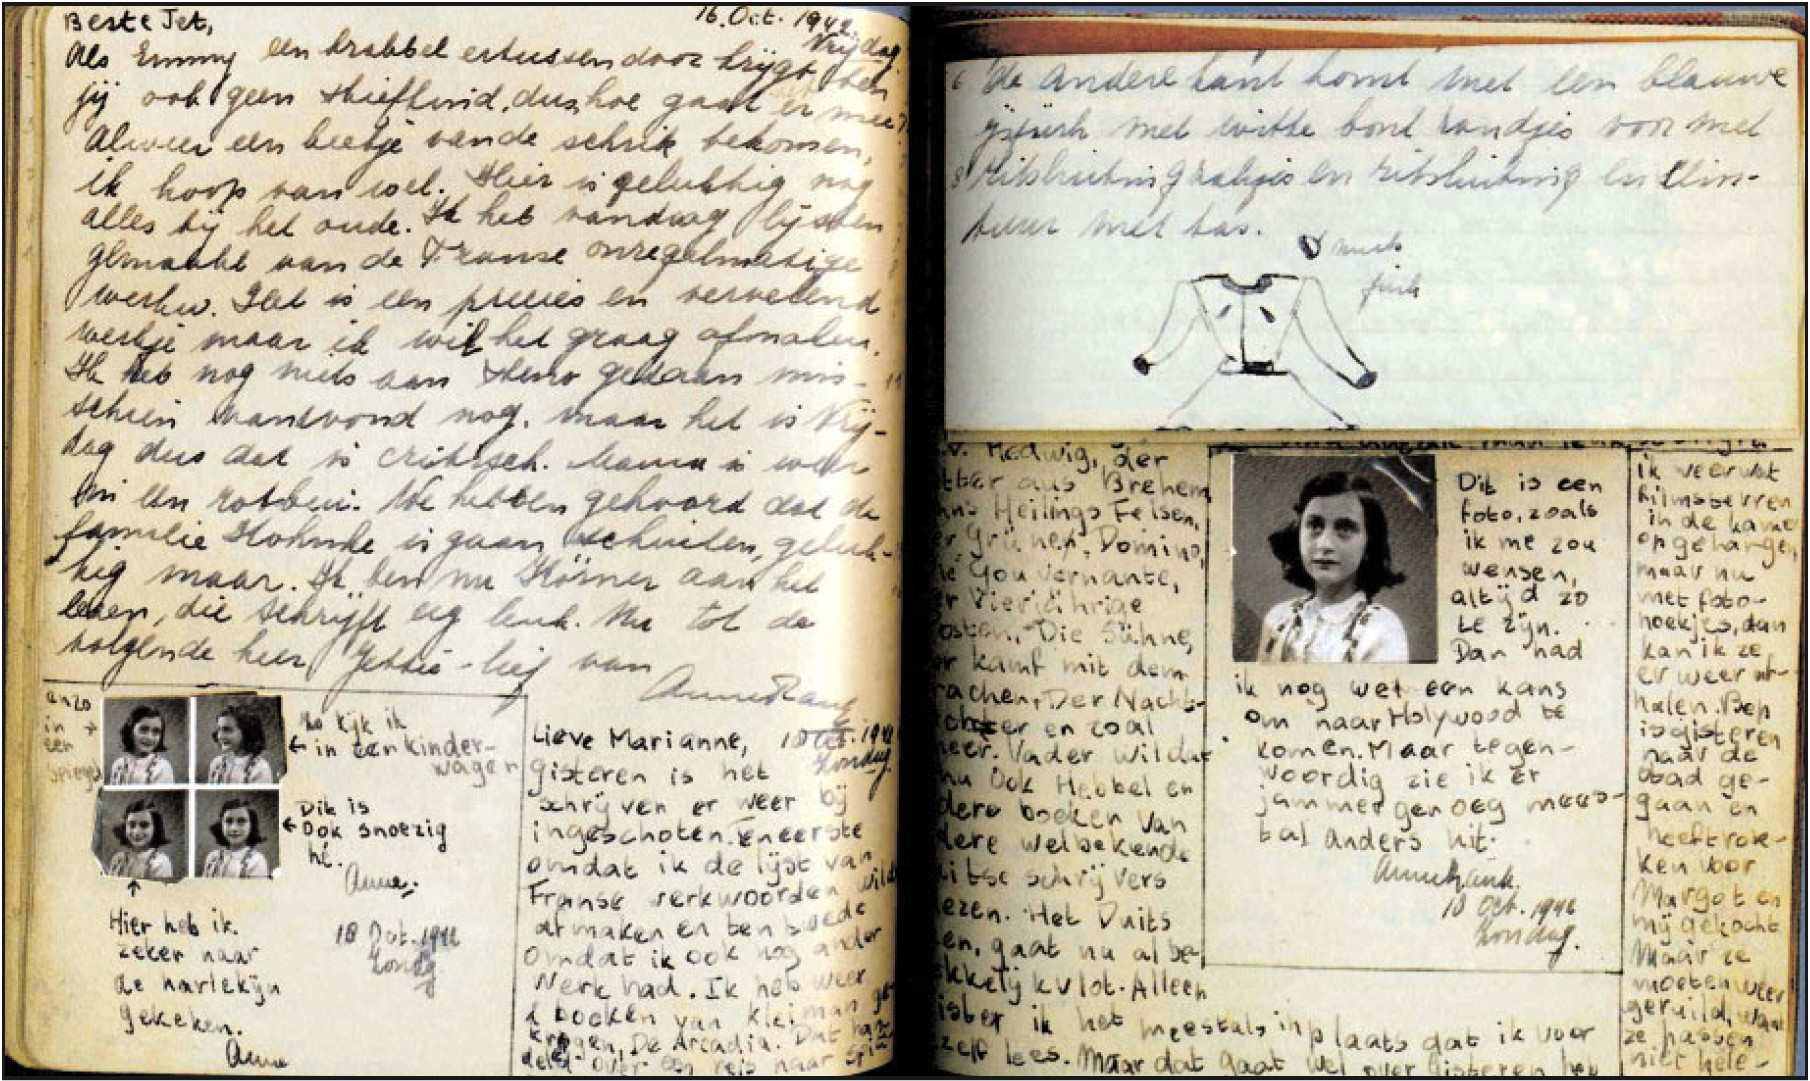 anne frank journal Researchers deciphered the writing on two pages of anne frank's diary that she  had covered over with masking paper, discovering four risque.